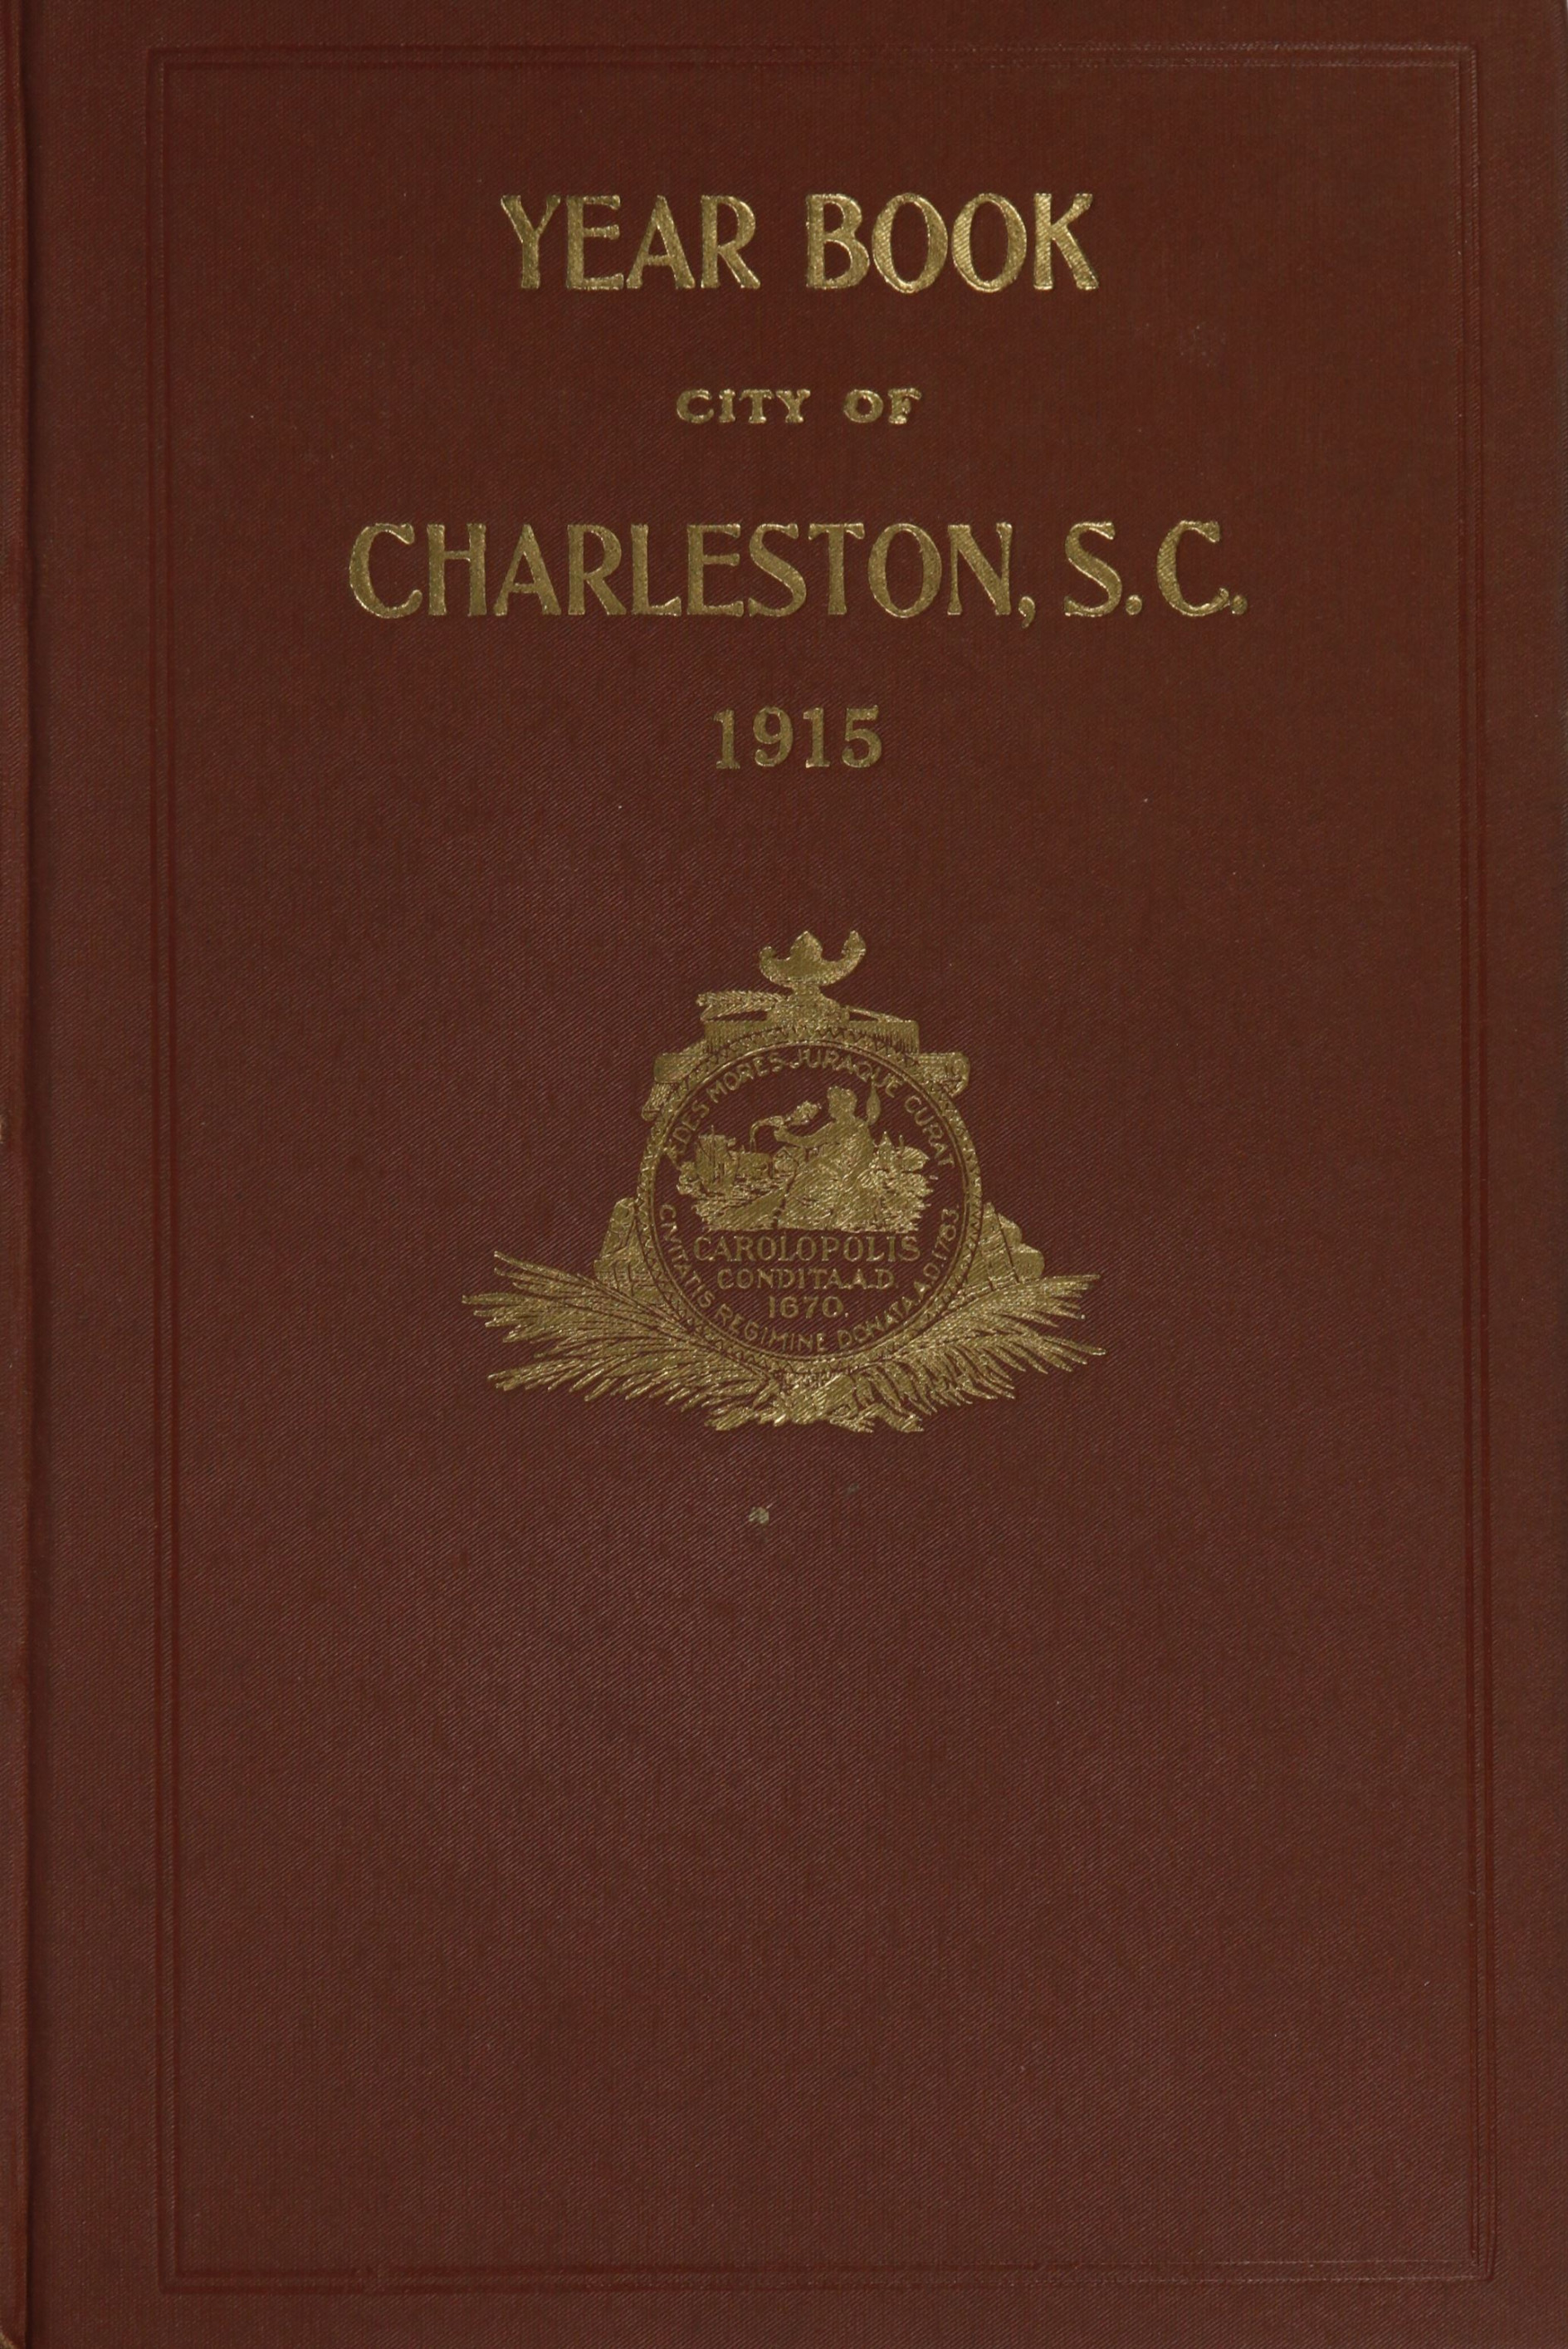 Charleston Yearbook, 1915